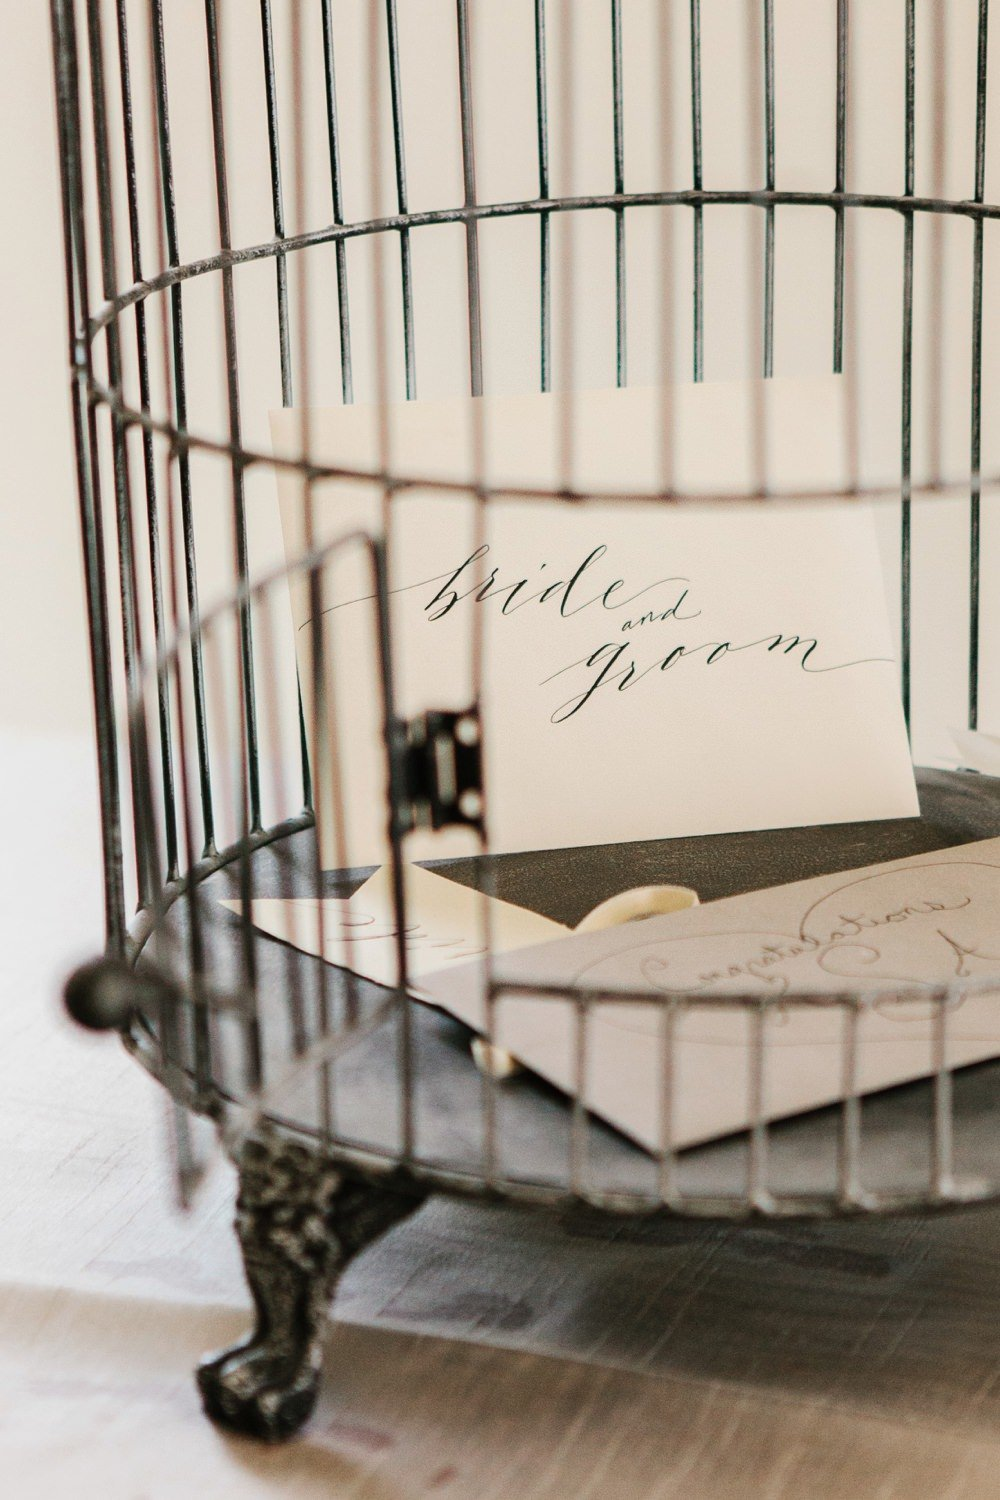 Birdcage for wedding gift cards at Belle Mer in Newport, RI